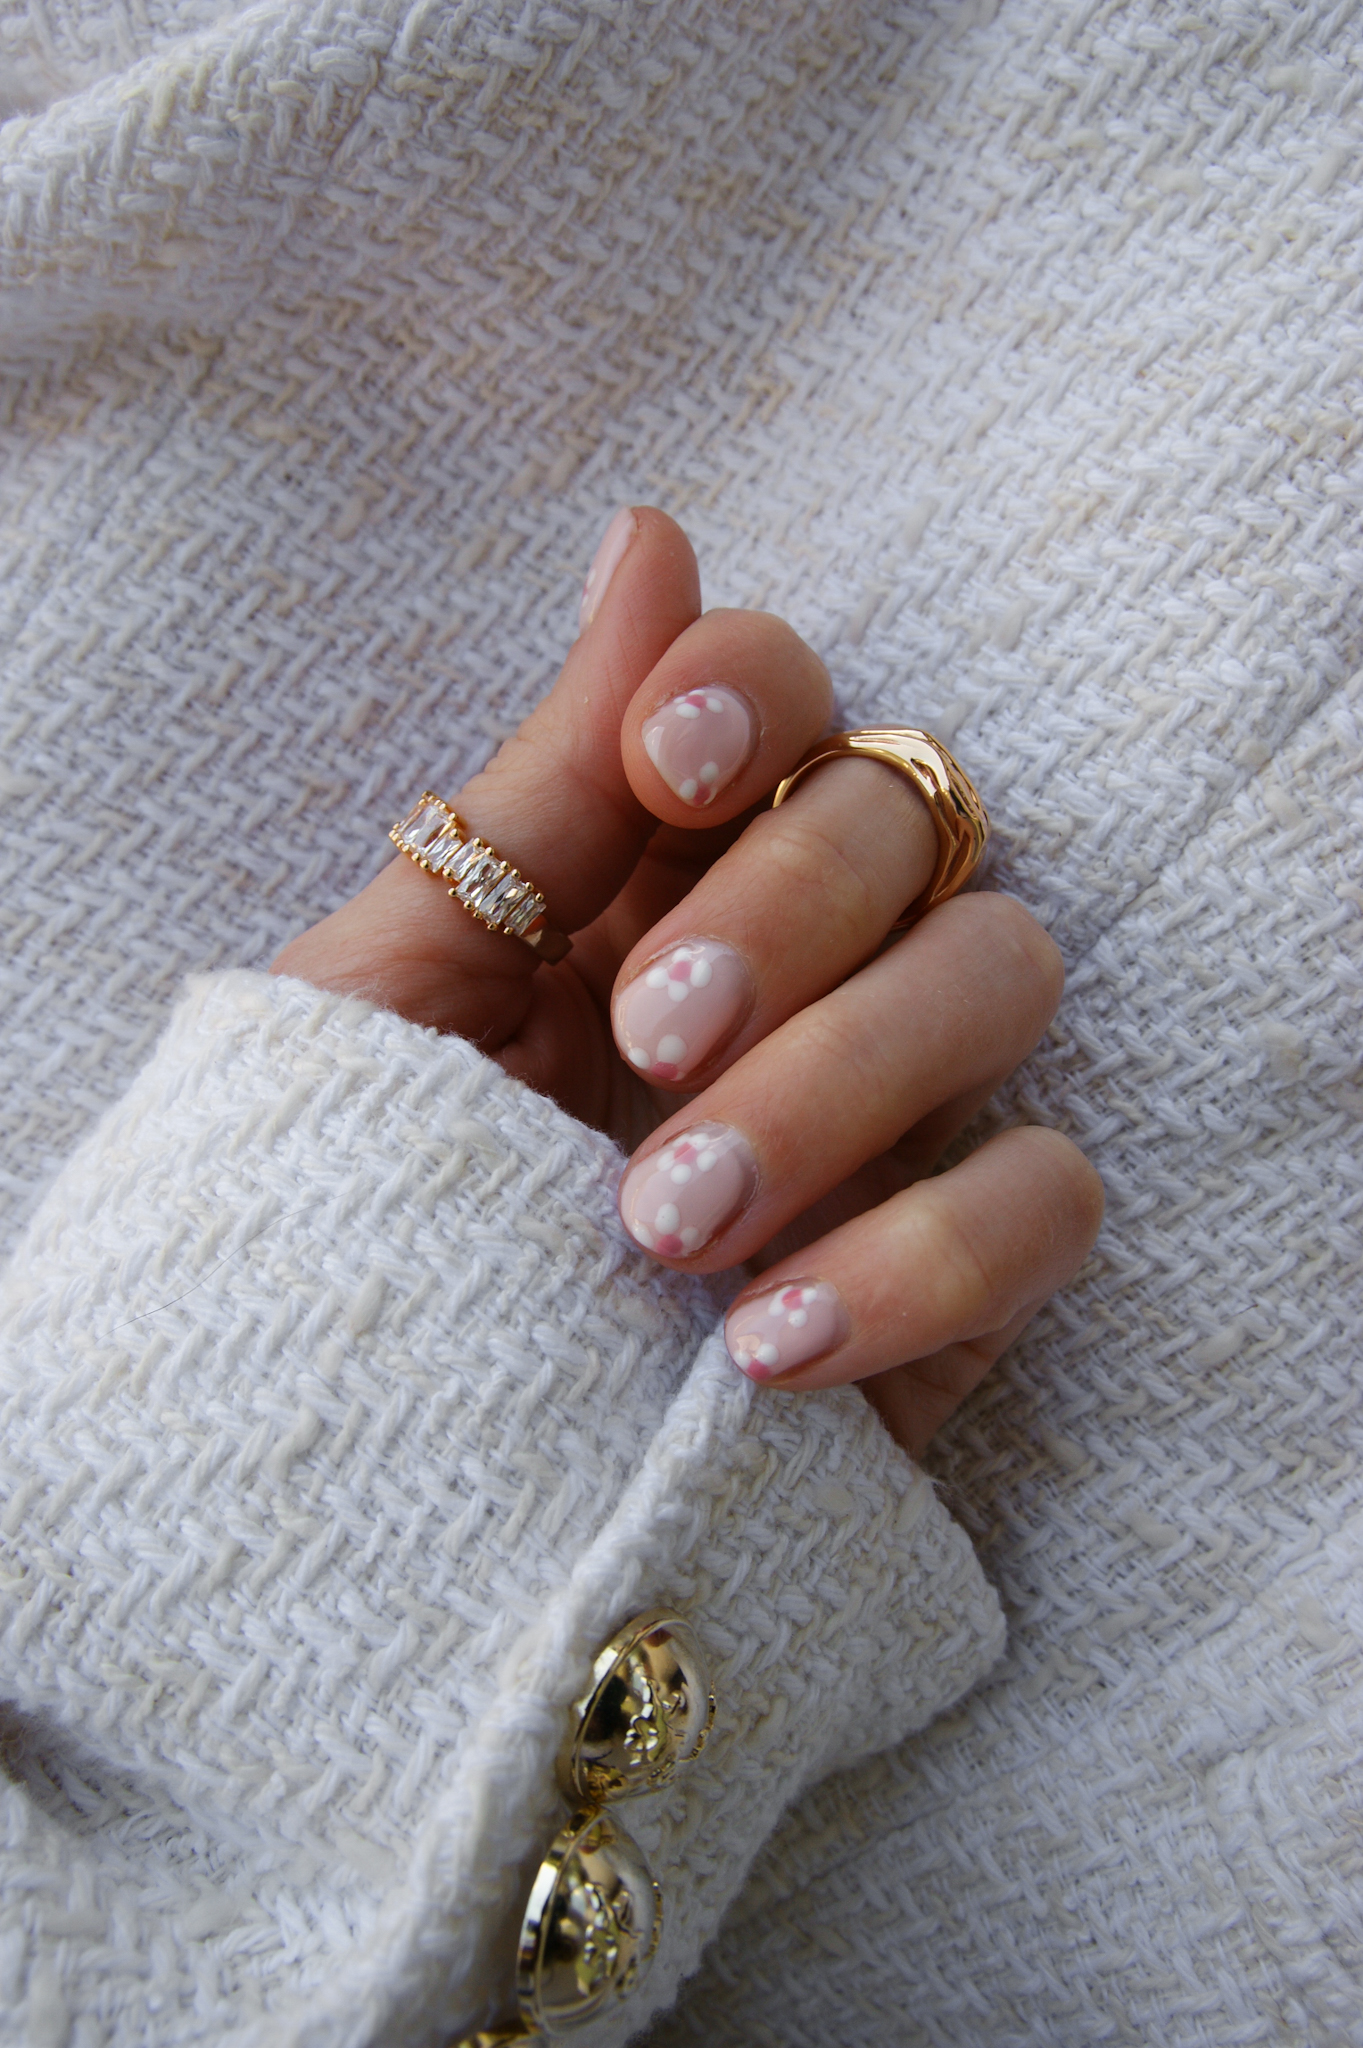 floral nails, alessandro striplac, pink nails, nude, Sif Jakobs, rings